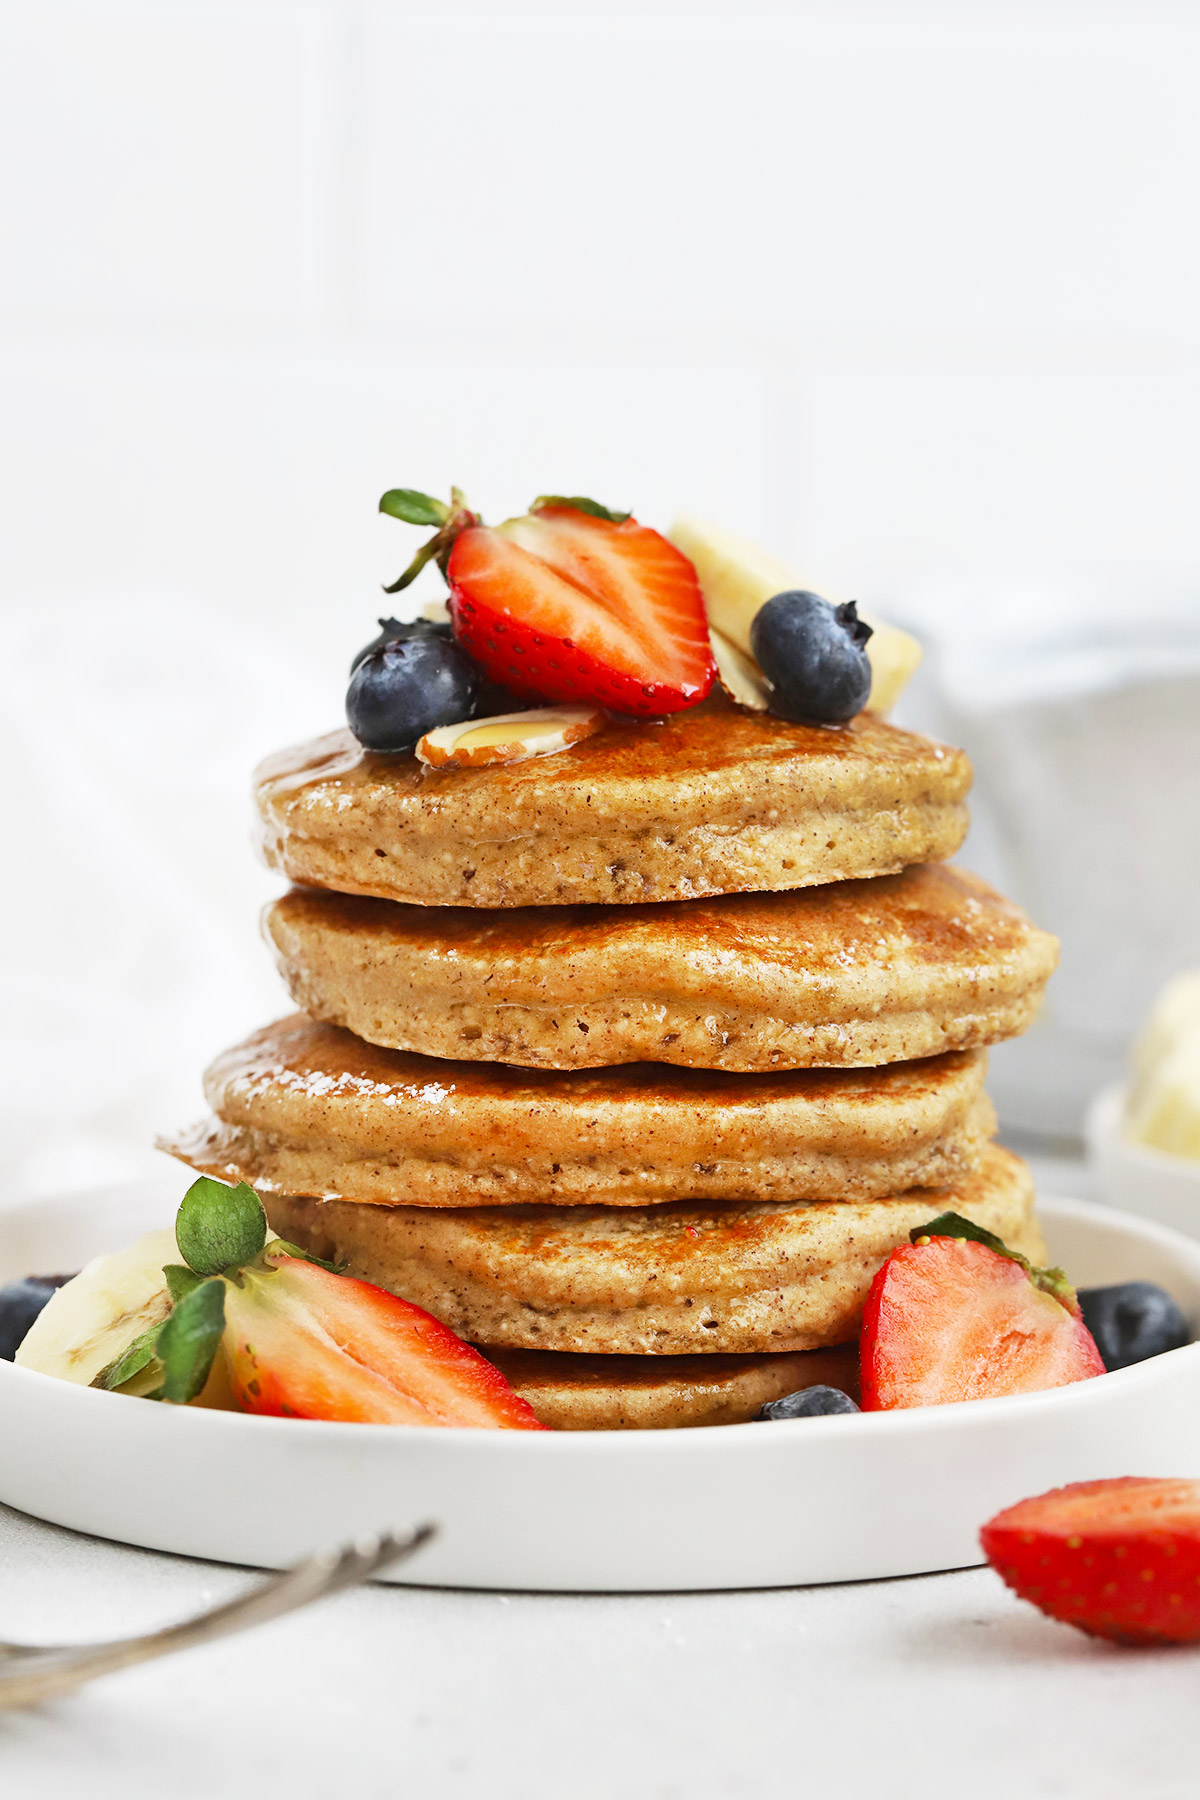 Close up Front view of a stack of blender banana oatmeal pancakes topped with sliced bananas, fresh berries, and syrup.